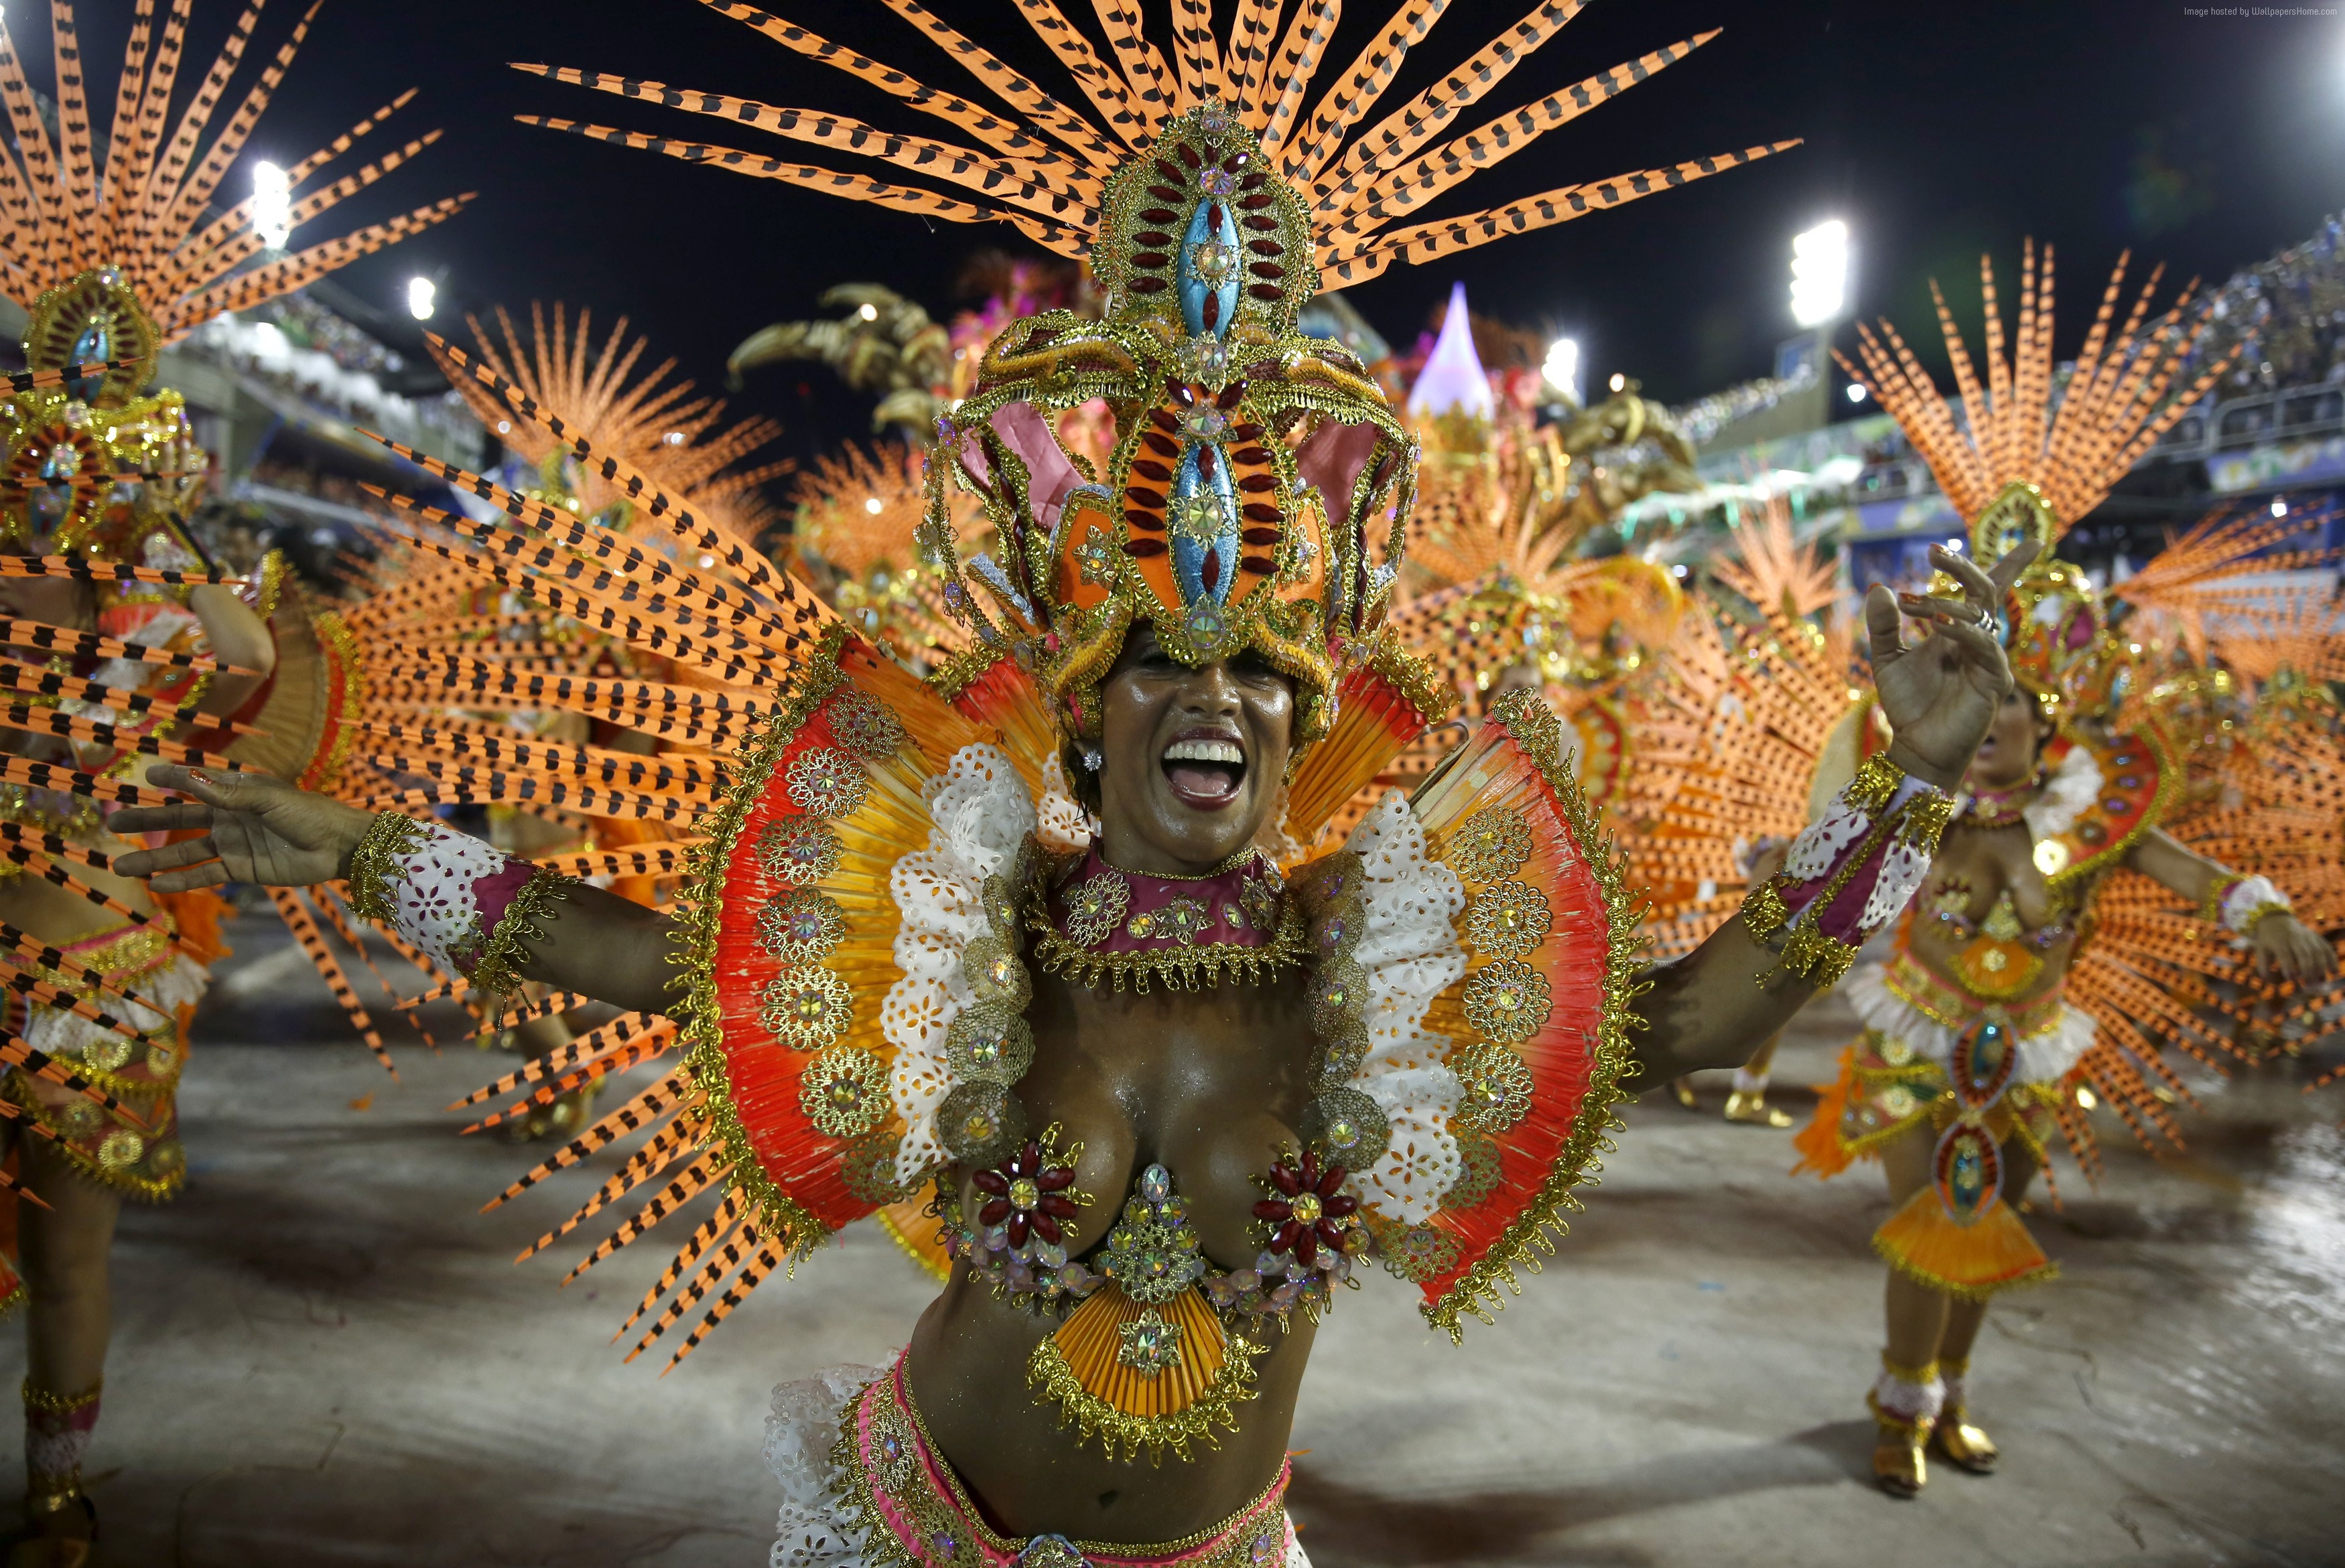 4k Carnival Wallpapers High Quality Download Free